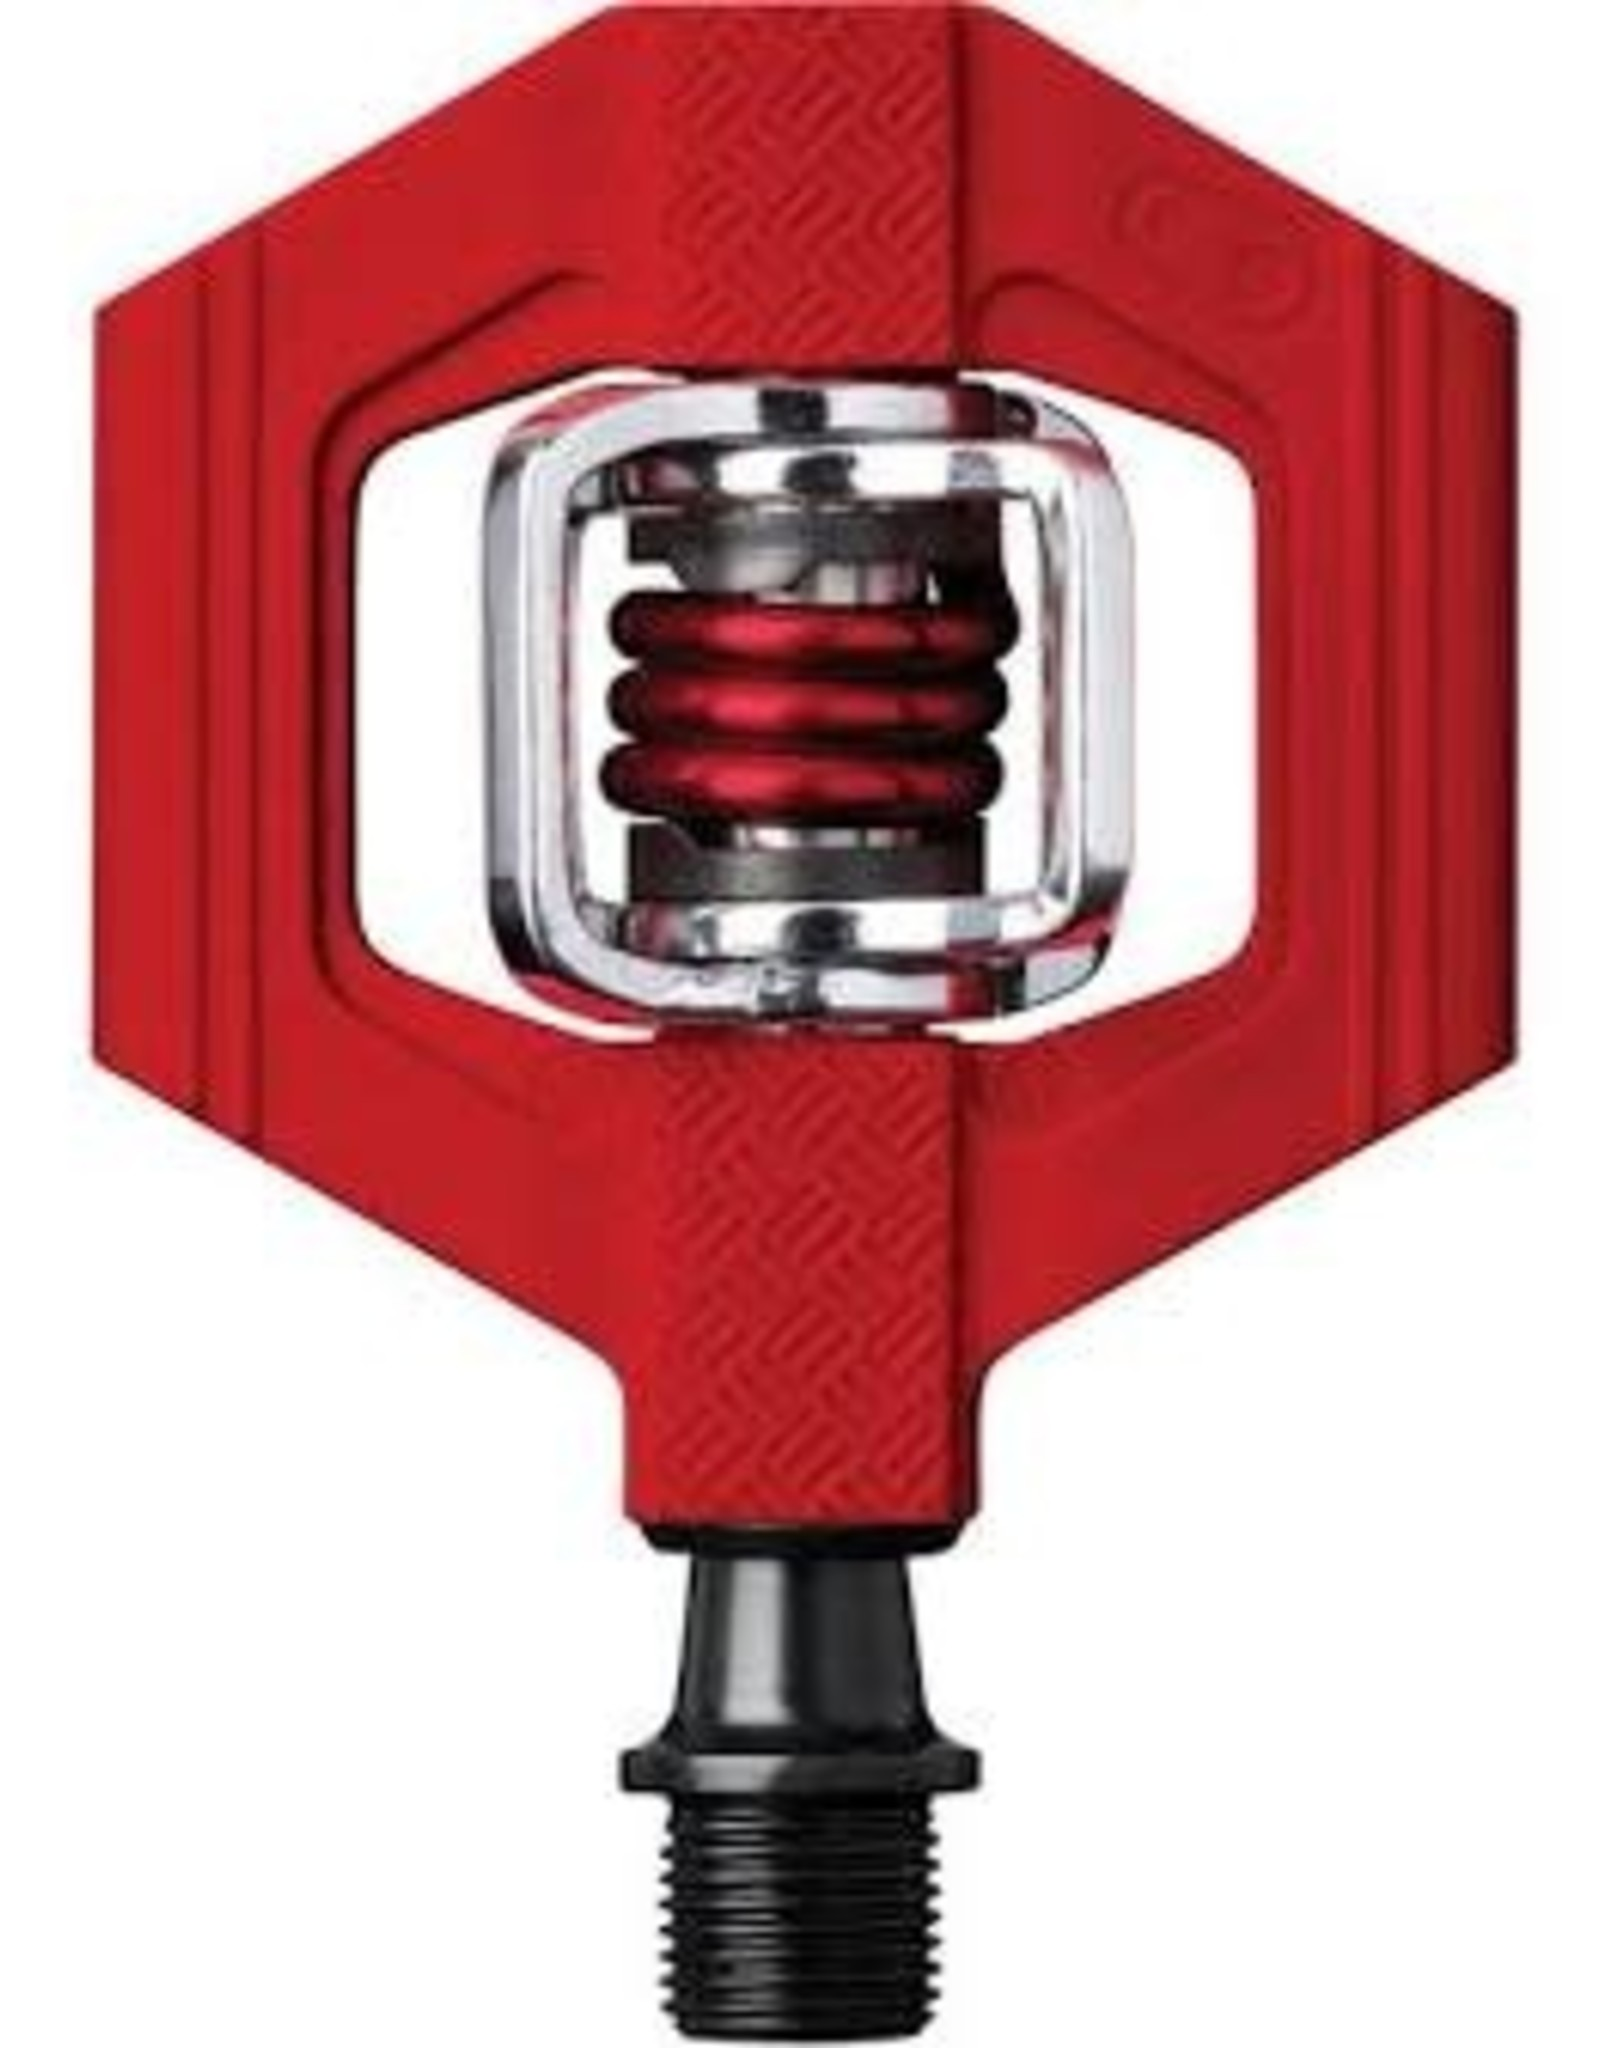 CRANK BROTHERS CRANKBRO CANDY 1 PDL RED